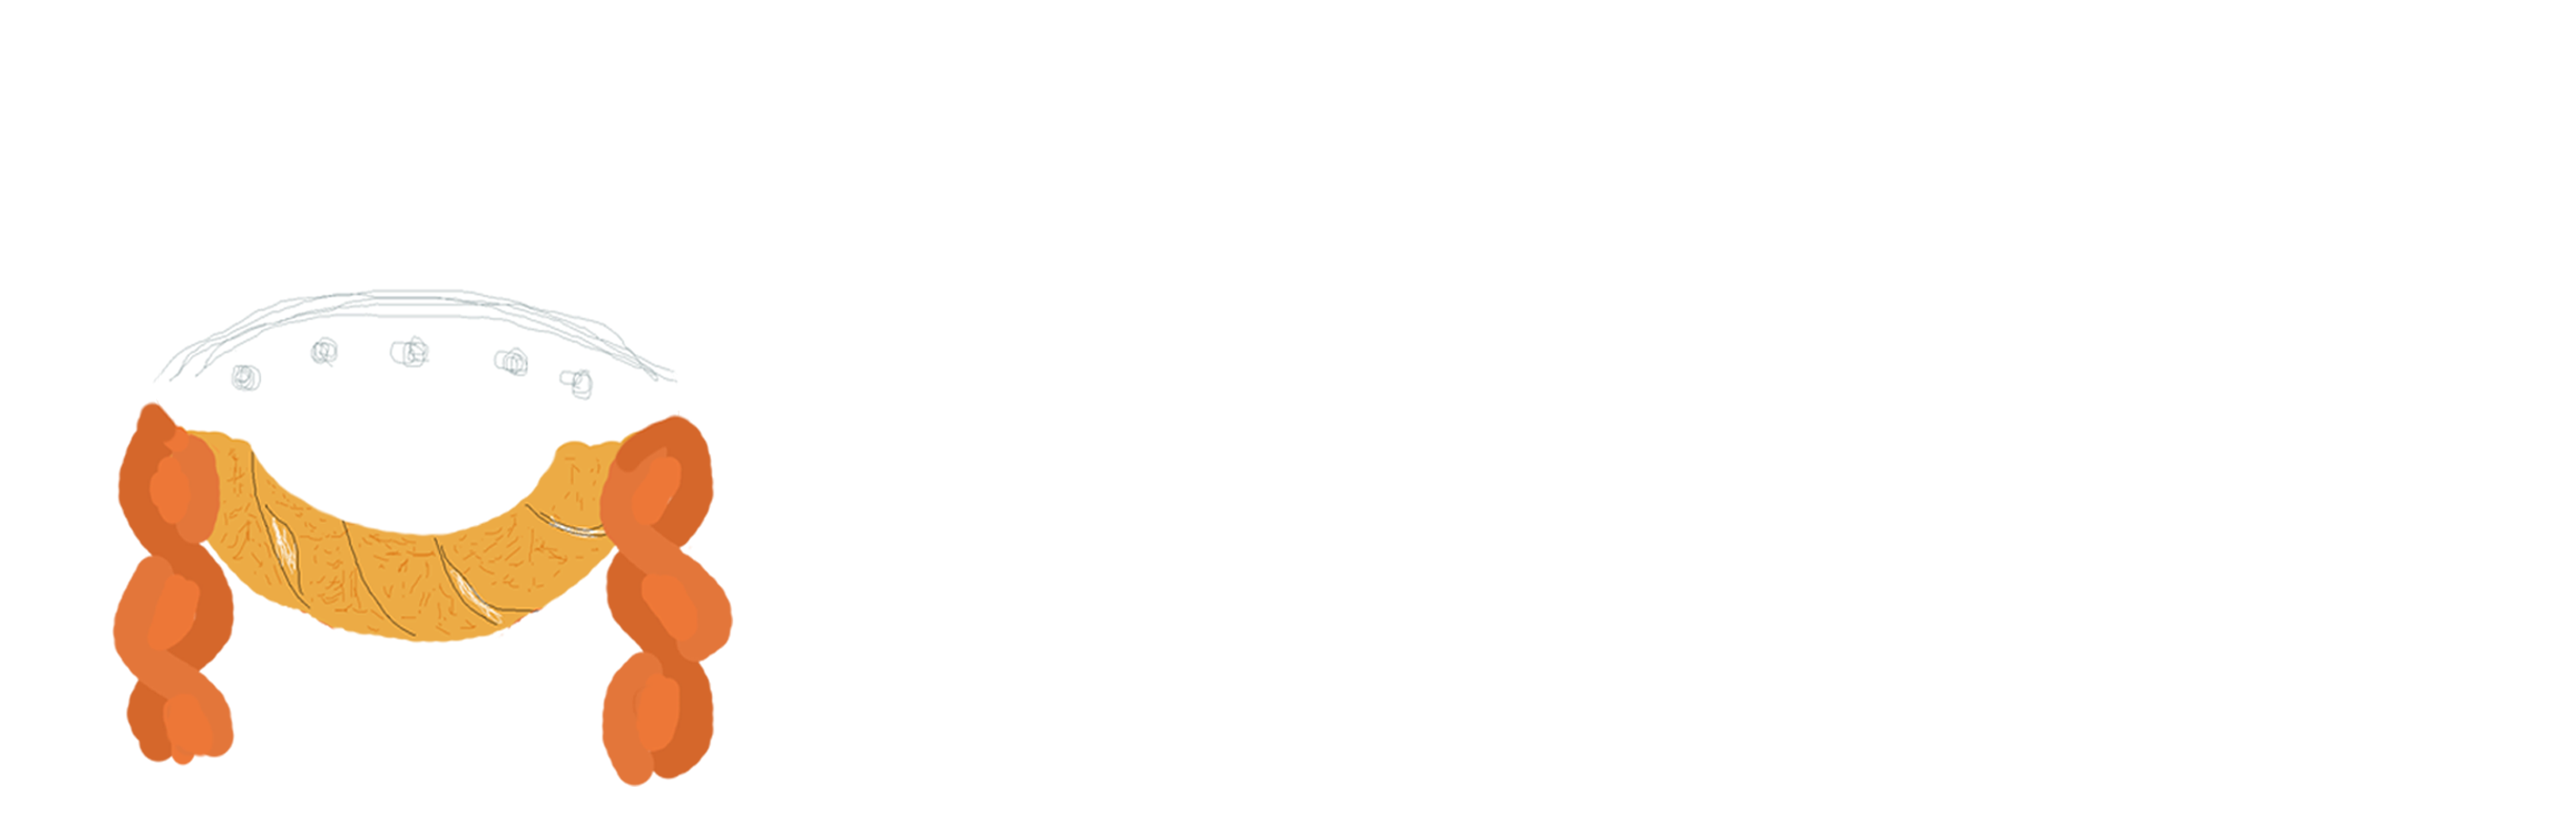 Nordik Simit - İskandinavya'dan gevrek